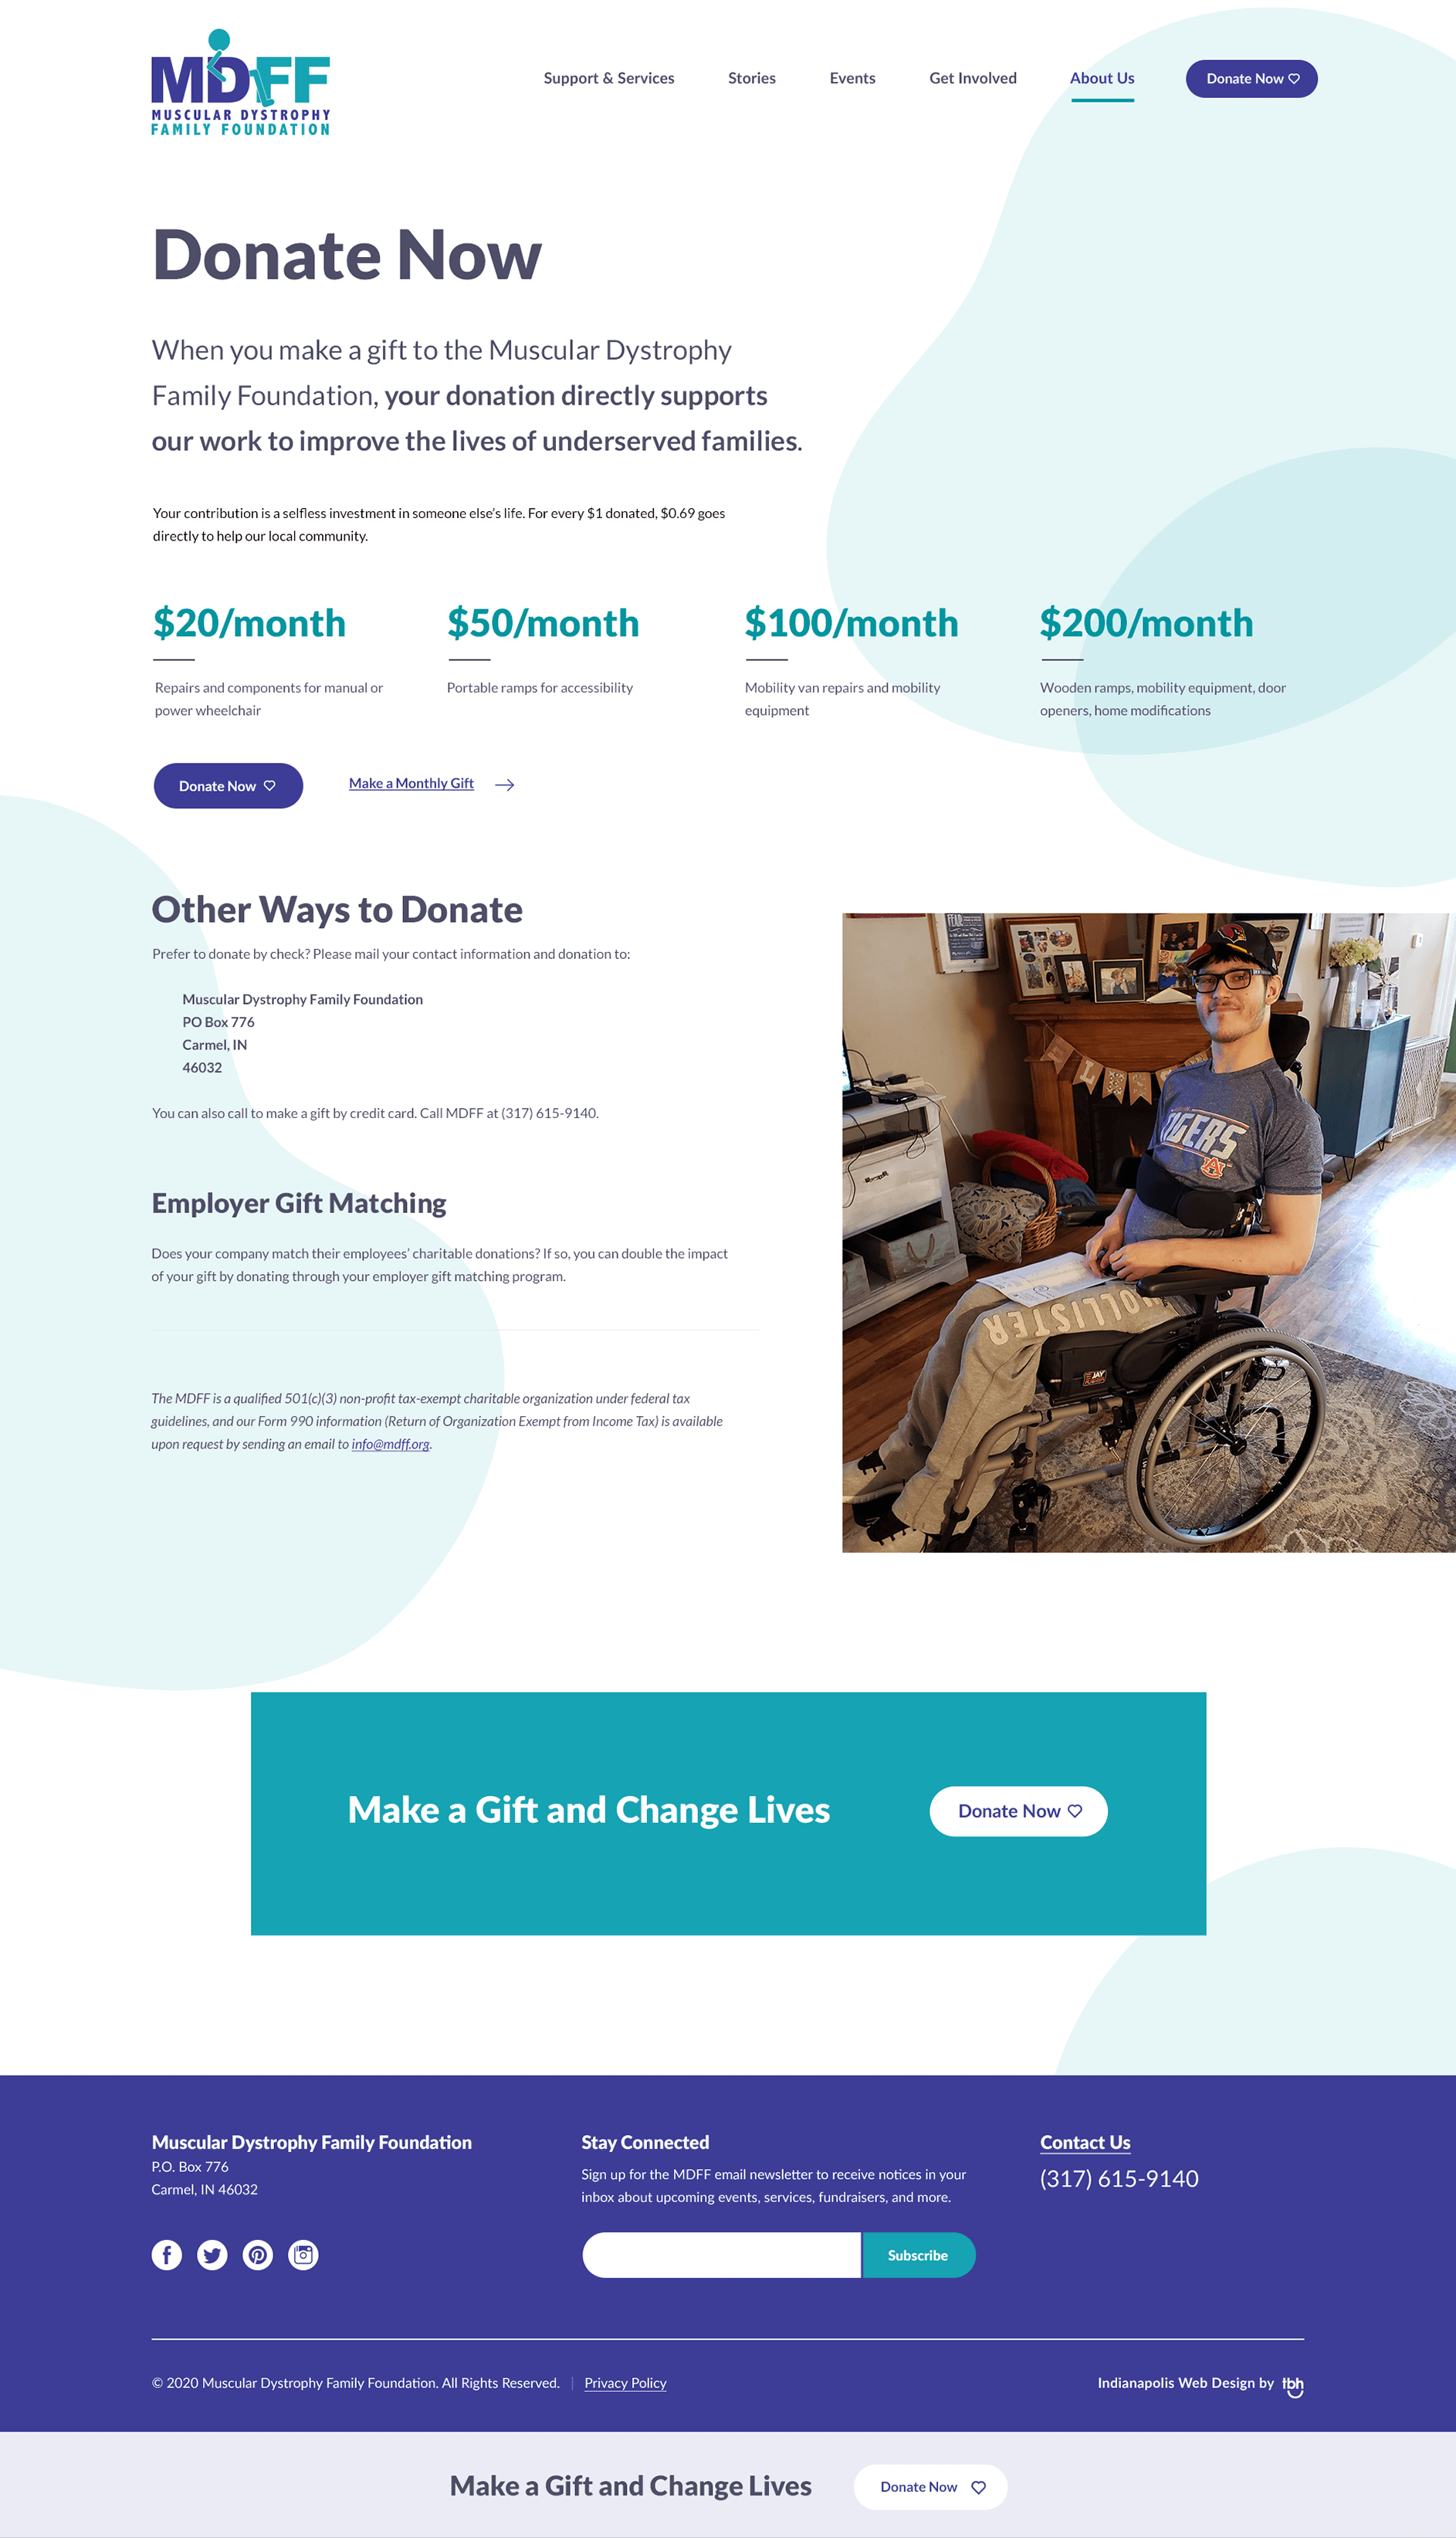 Muscular Dystrophy Family Foundation donate now web design